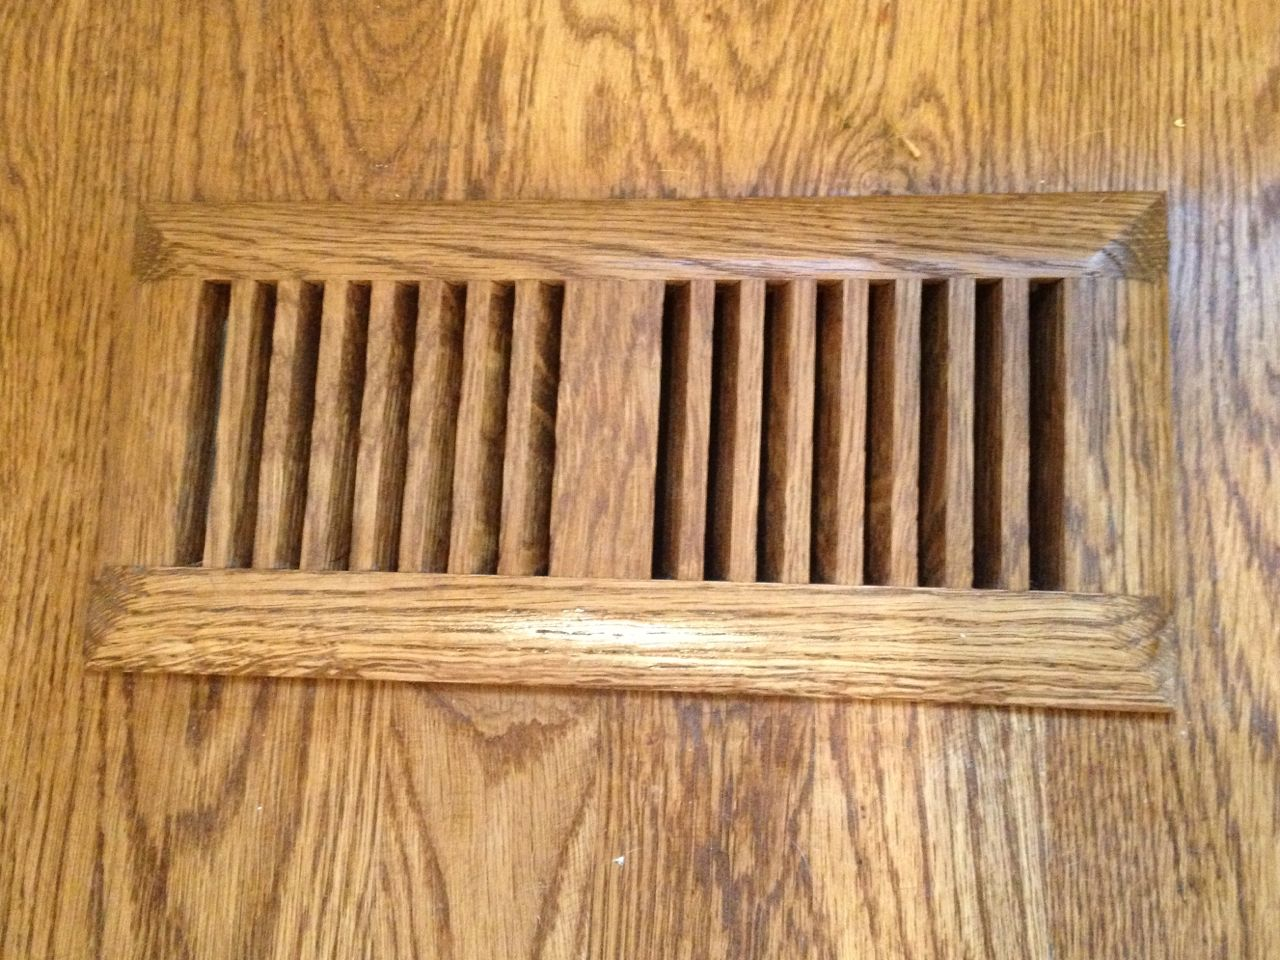 Beautiful Wooden Vent Cover Stained And Sealed To Match The Hardwood Floor